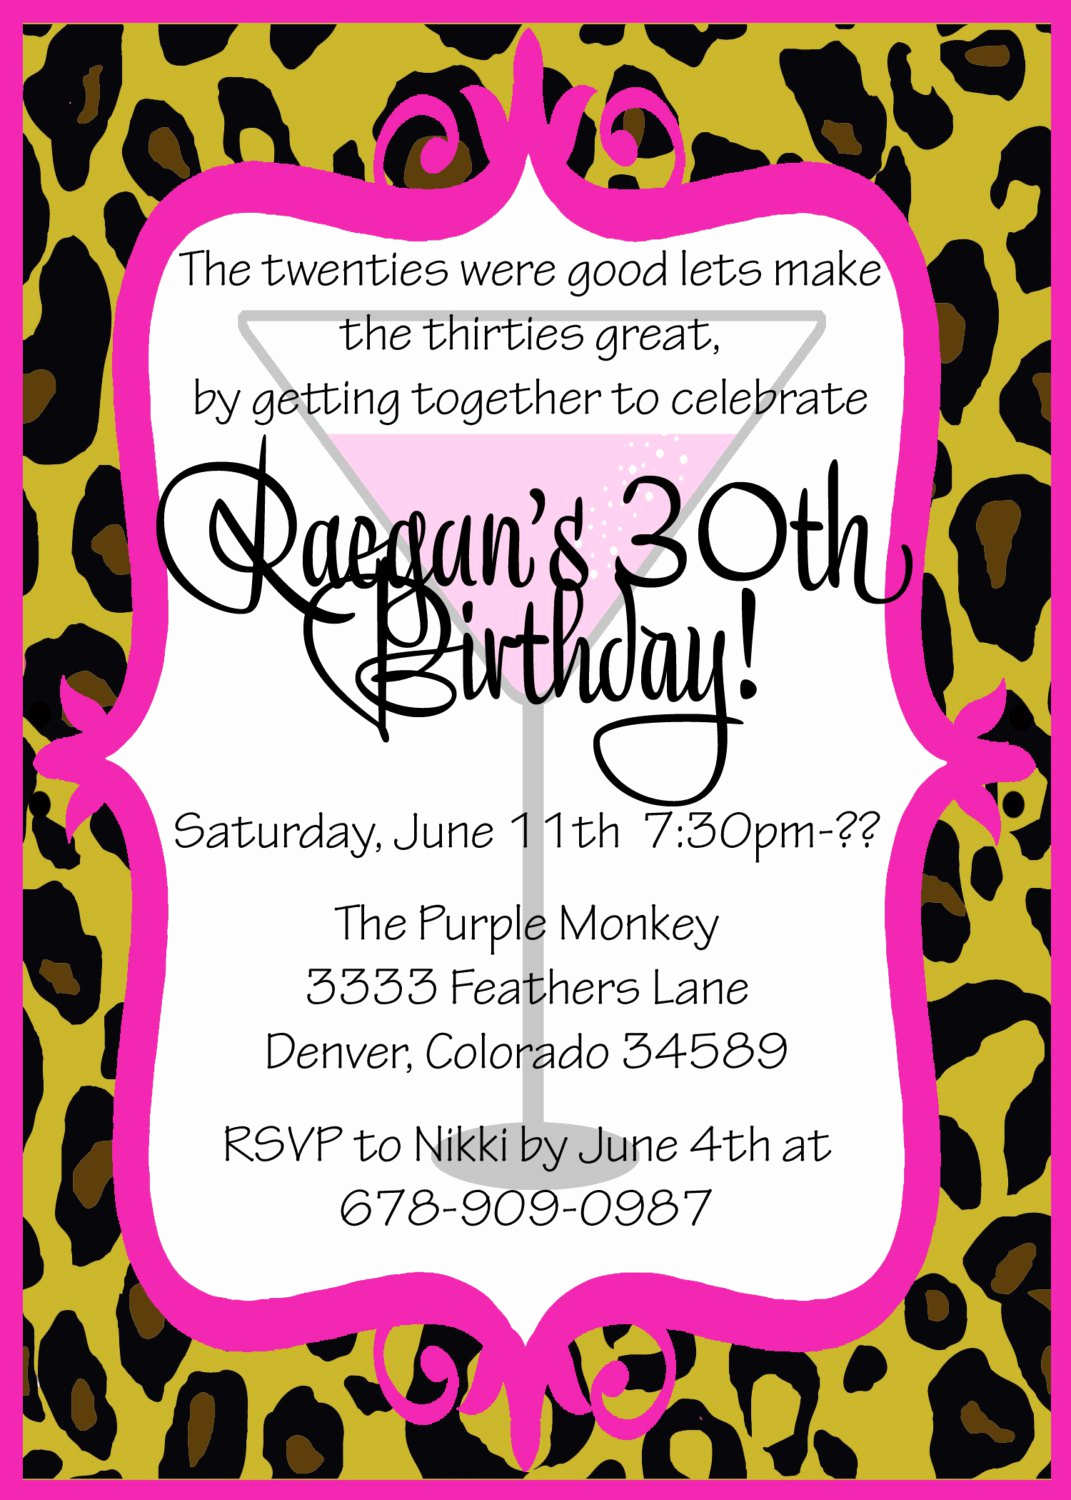 Funny Party Invitation Wording Lovely Funny Birthday Invitation Wording